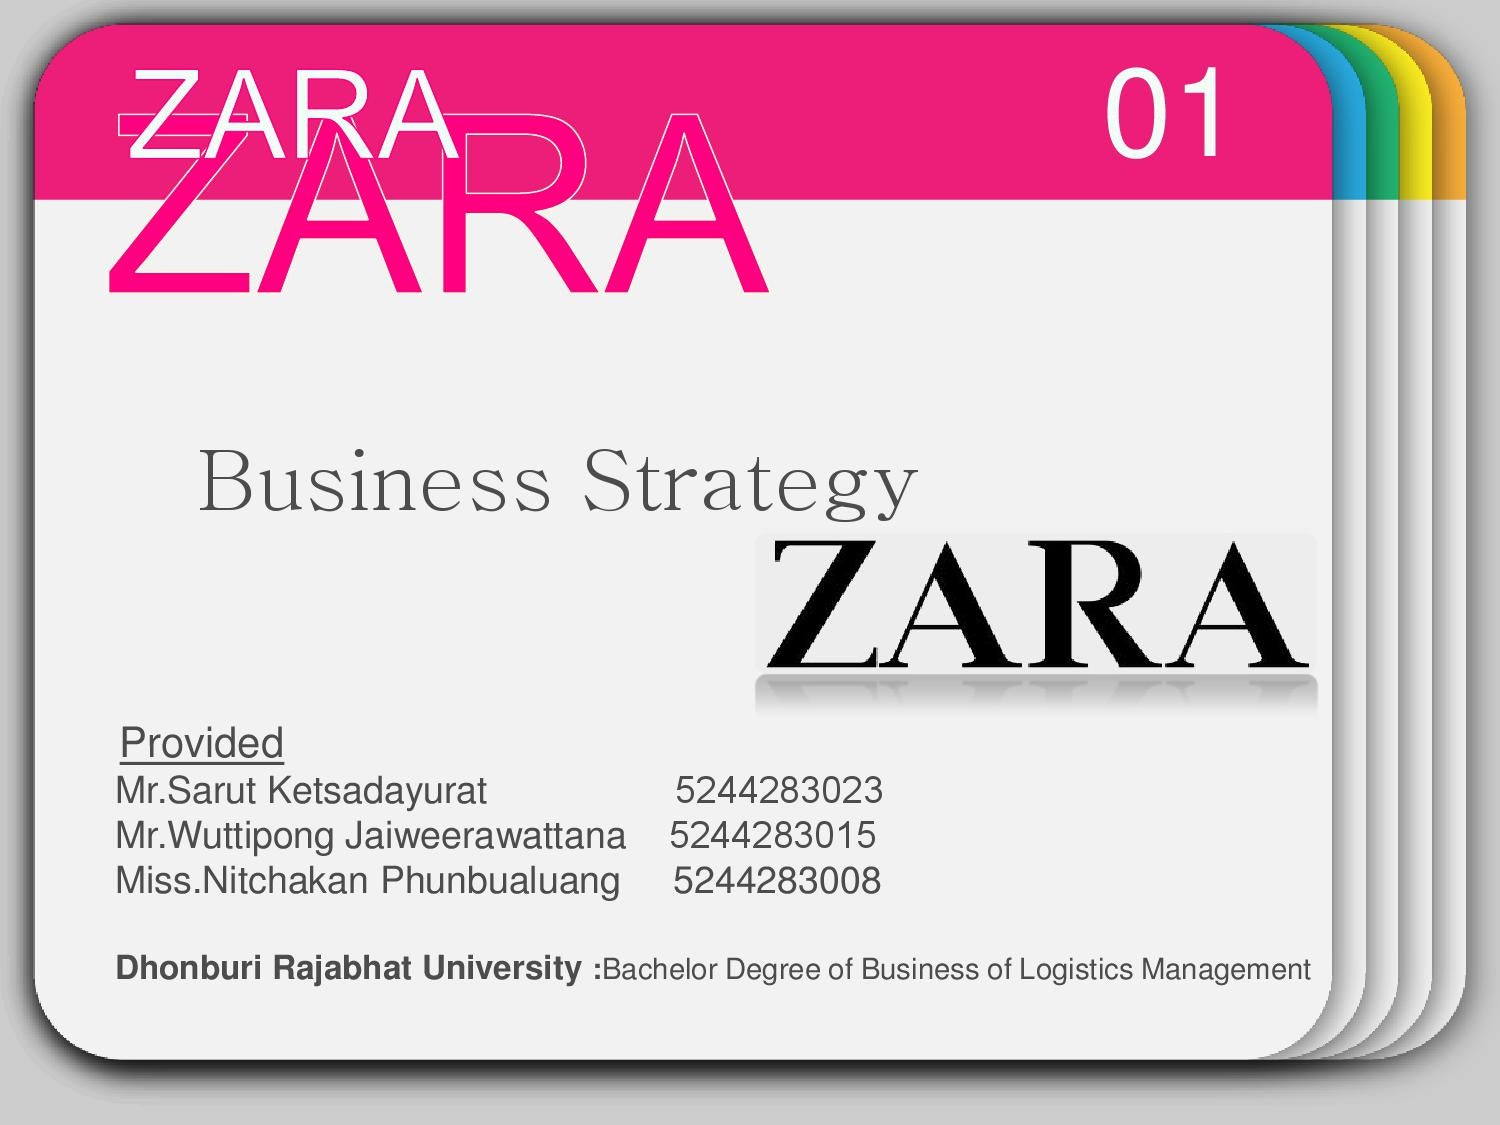 zara case study analysis research paper on zakat